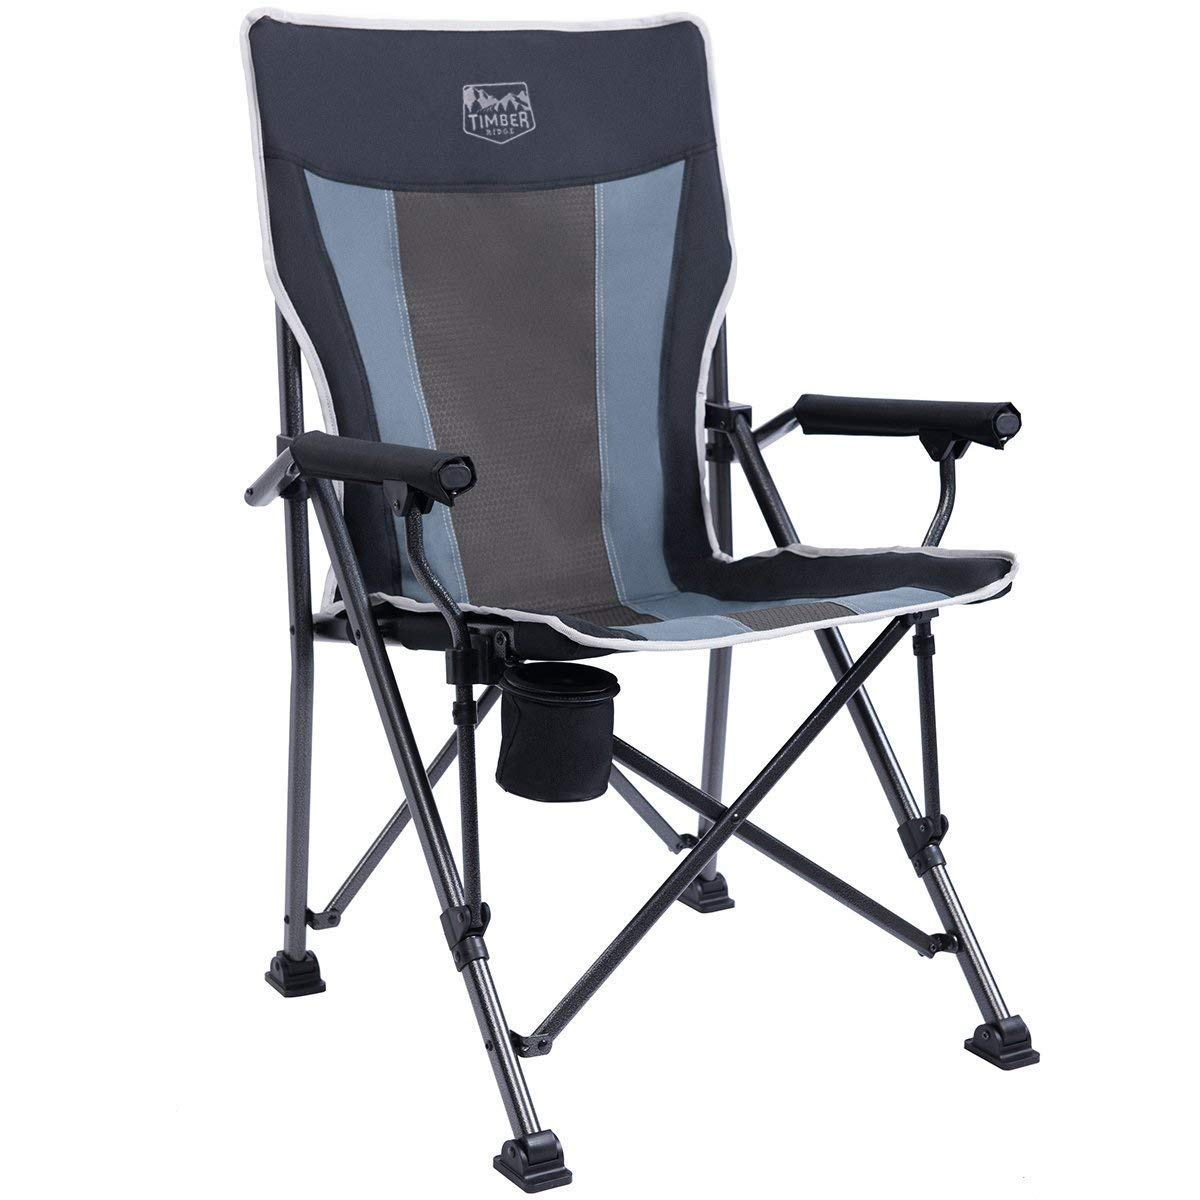 Timber Ridge Camping Chair Ergonomic High Back Support 300lbs with Carry Bag Folding Quad Chair Outdoor Heavy Duty, Padded Armrest, Cup Holder